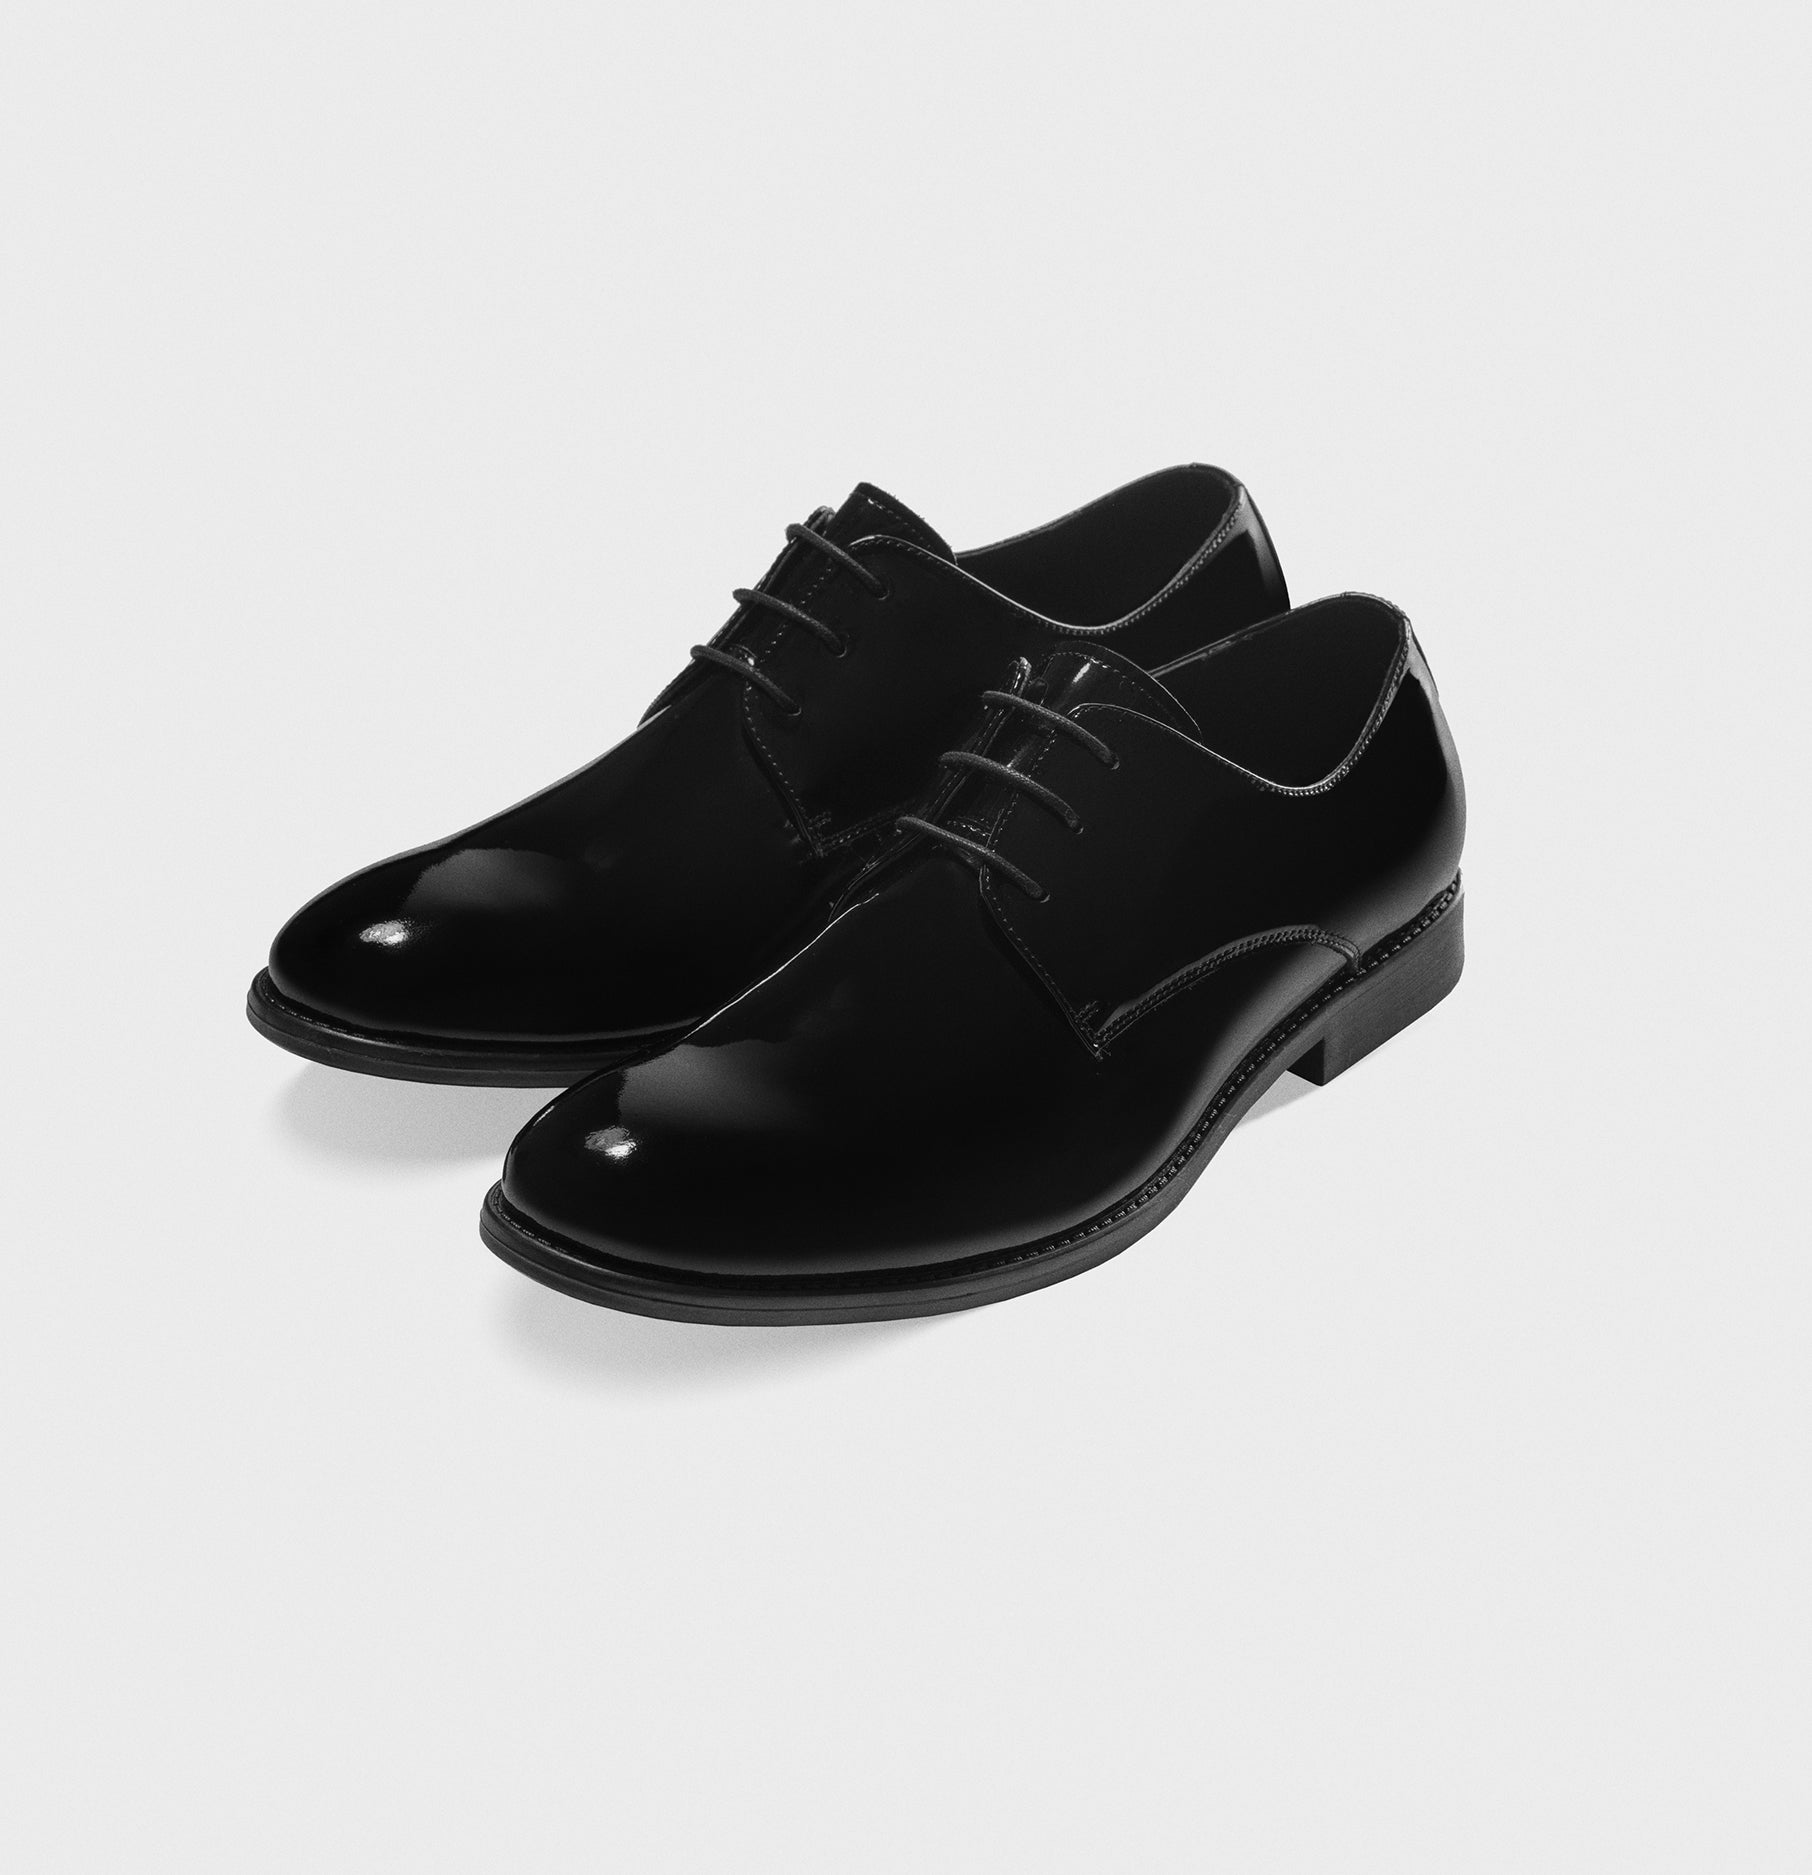 fc4767a9715aa Black Patent Leather Shoes